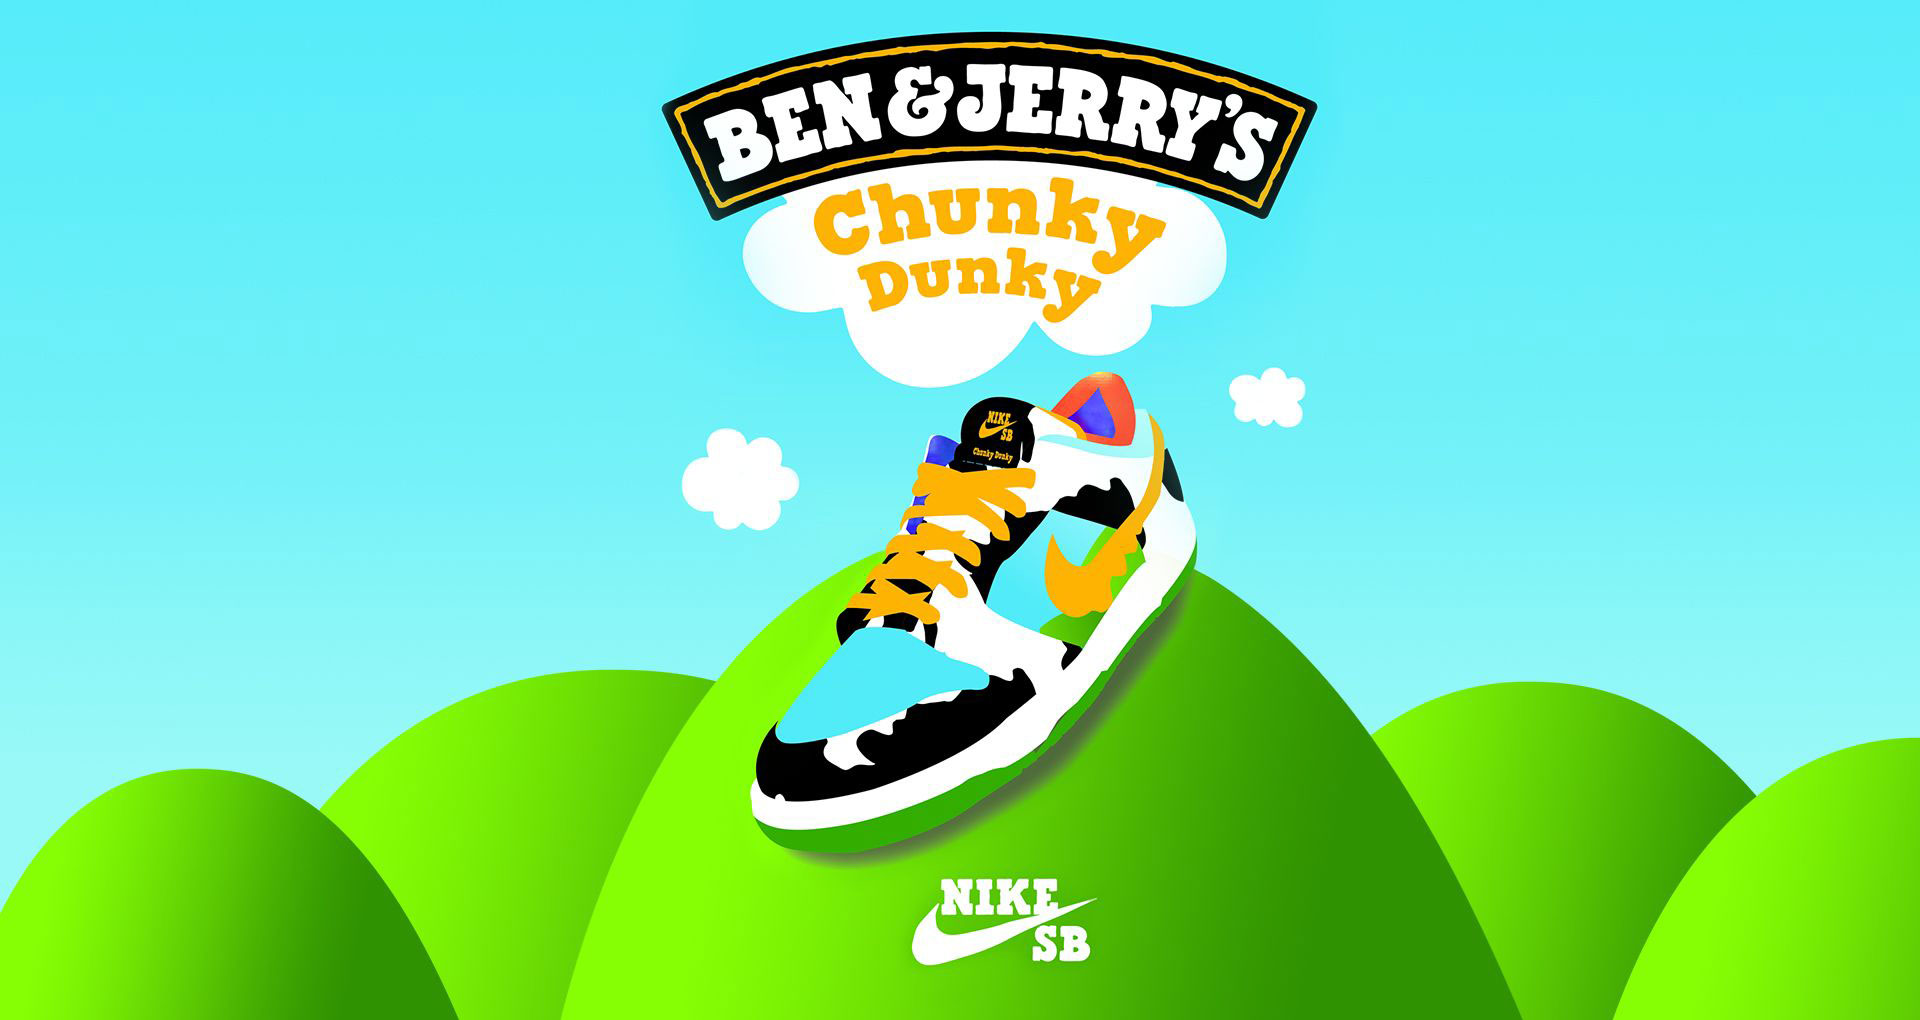 ben-and-jerrys-nike-sb-chunky-dunky